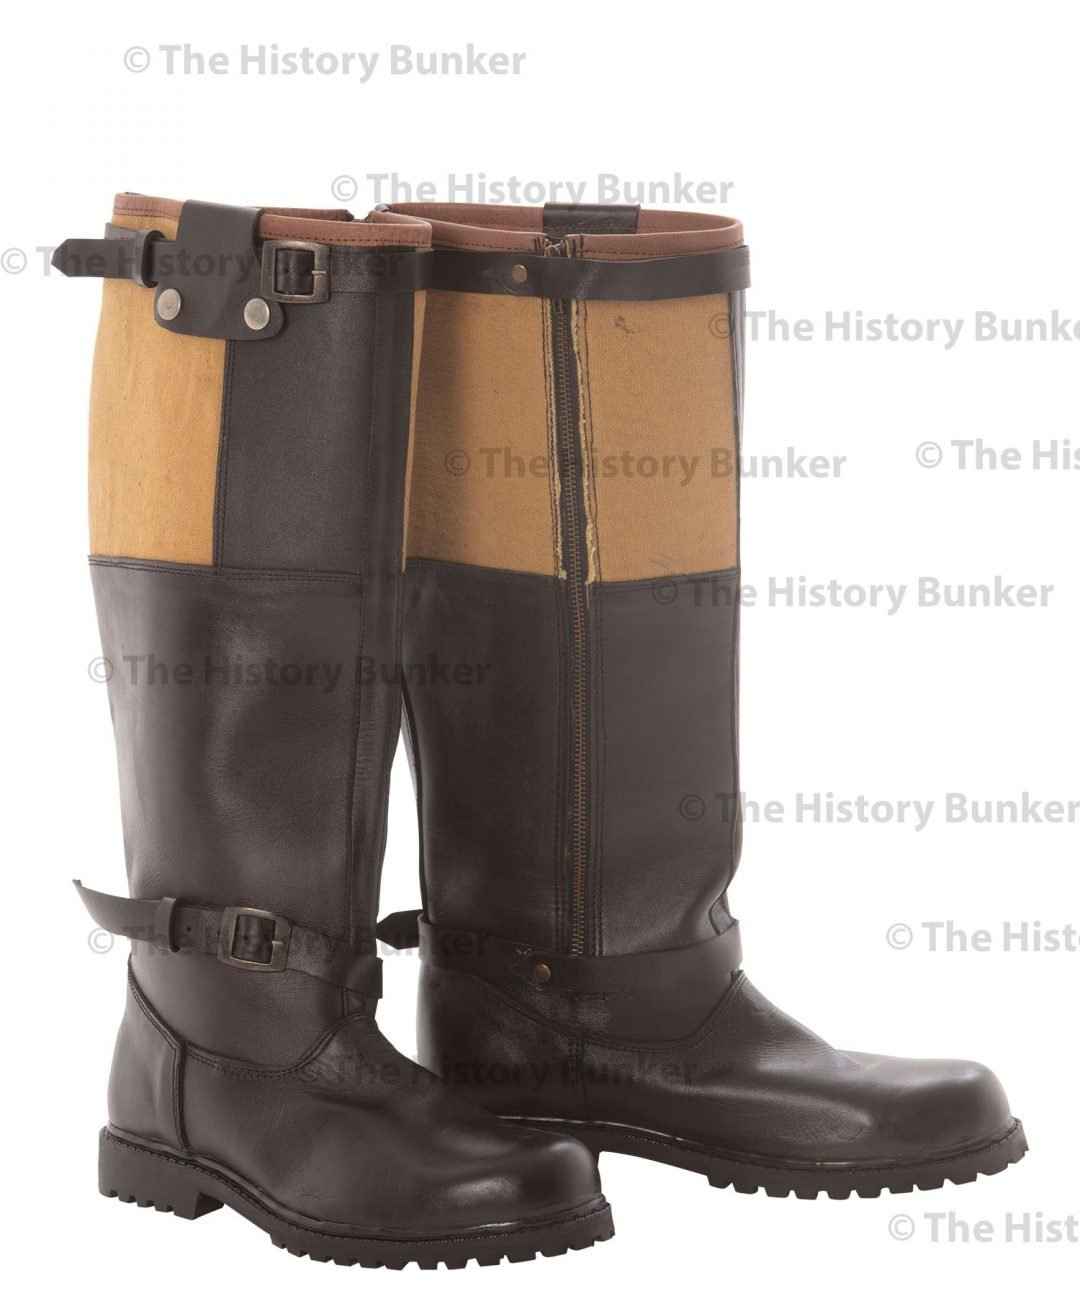 ww2 german flying boots